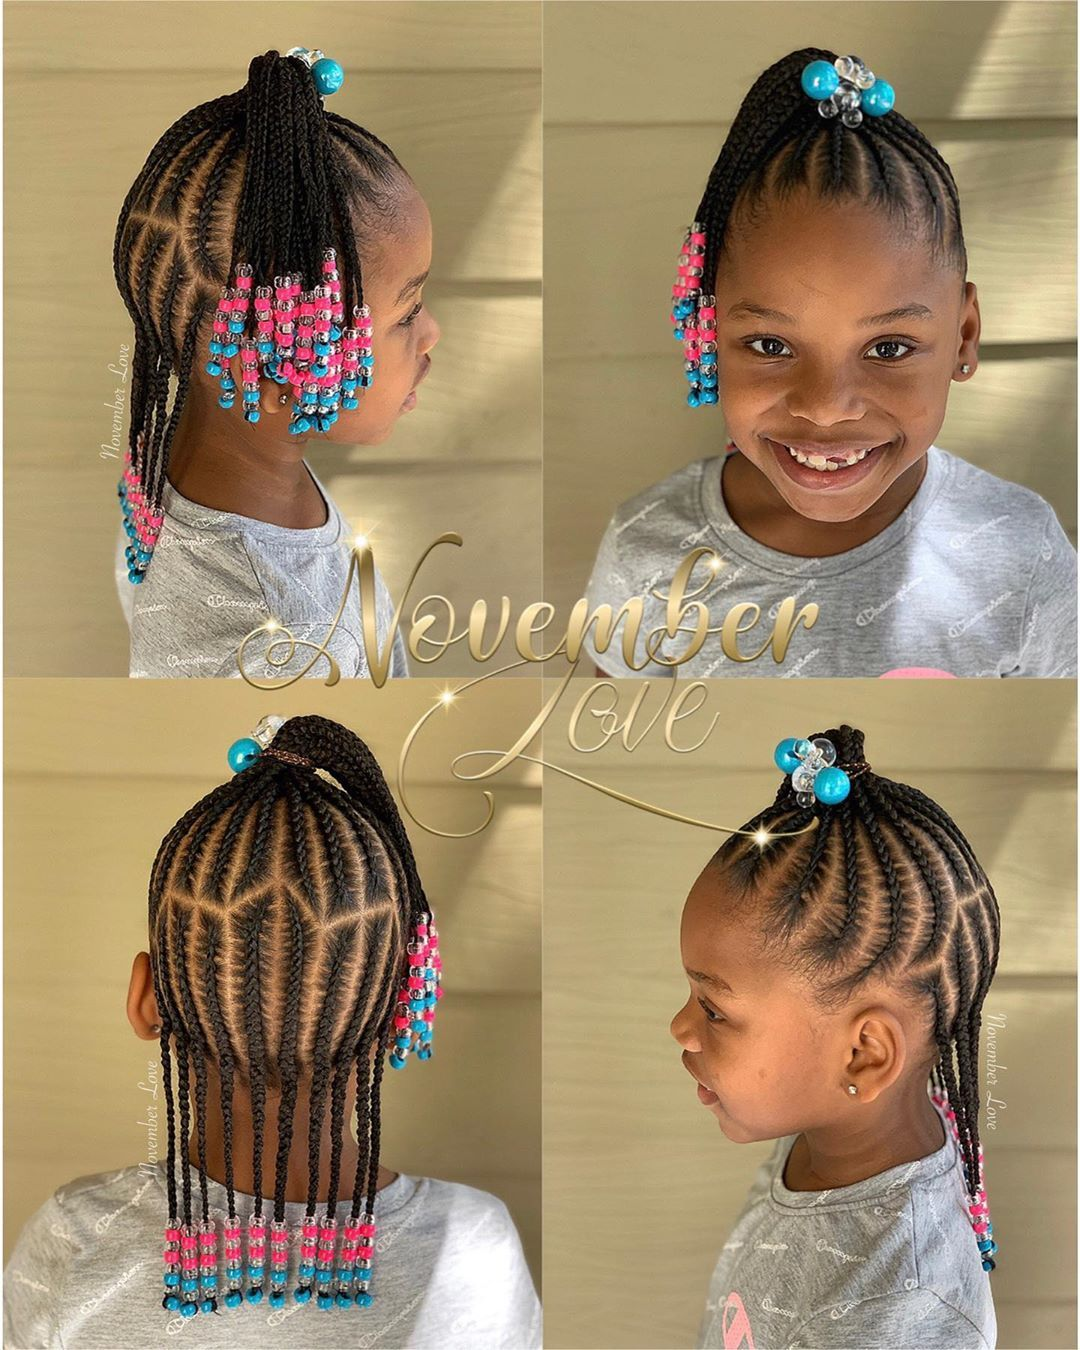 Children S Braids And Beads Booking Link In Bio Childrenhairstyles Braidart Childrensbrai Little Girl Braids Black Kids Hairstyles Toddler Hairstyles Girl